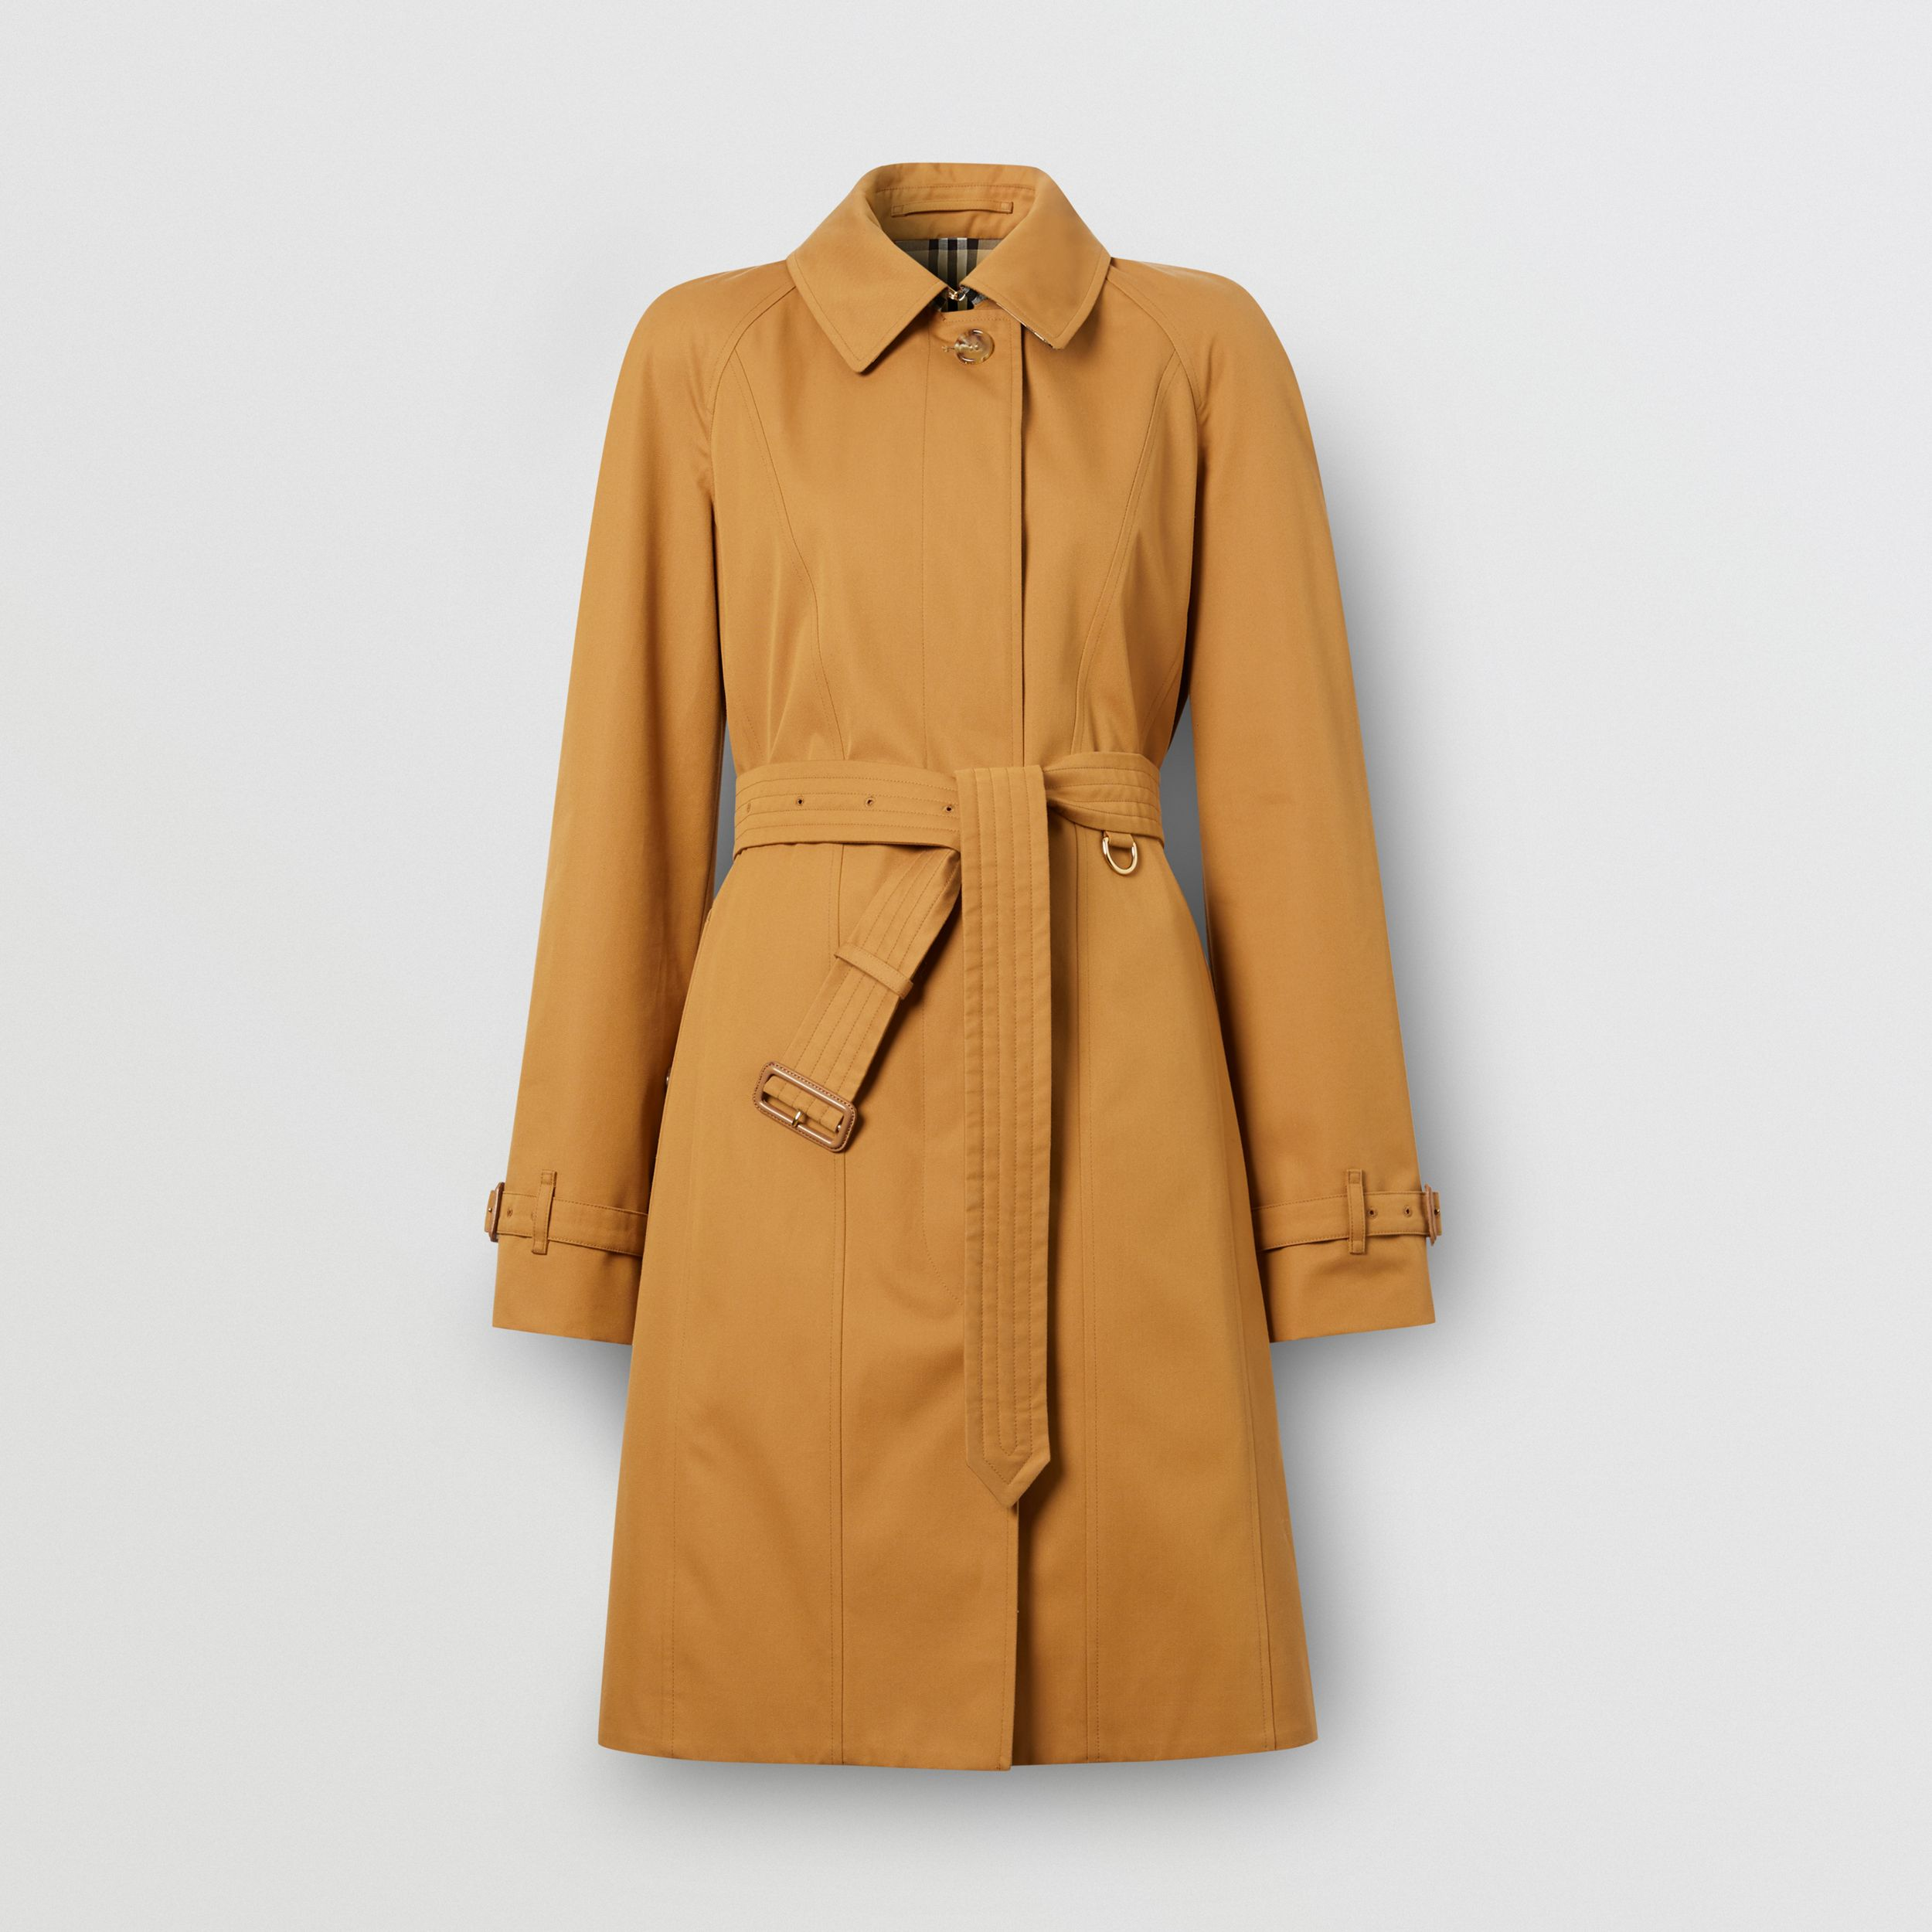 Cotton Gabardine Belted Swing Coat in Nutmeg - Women | Burberry United States - 4